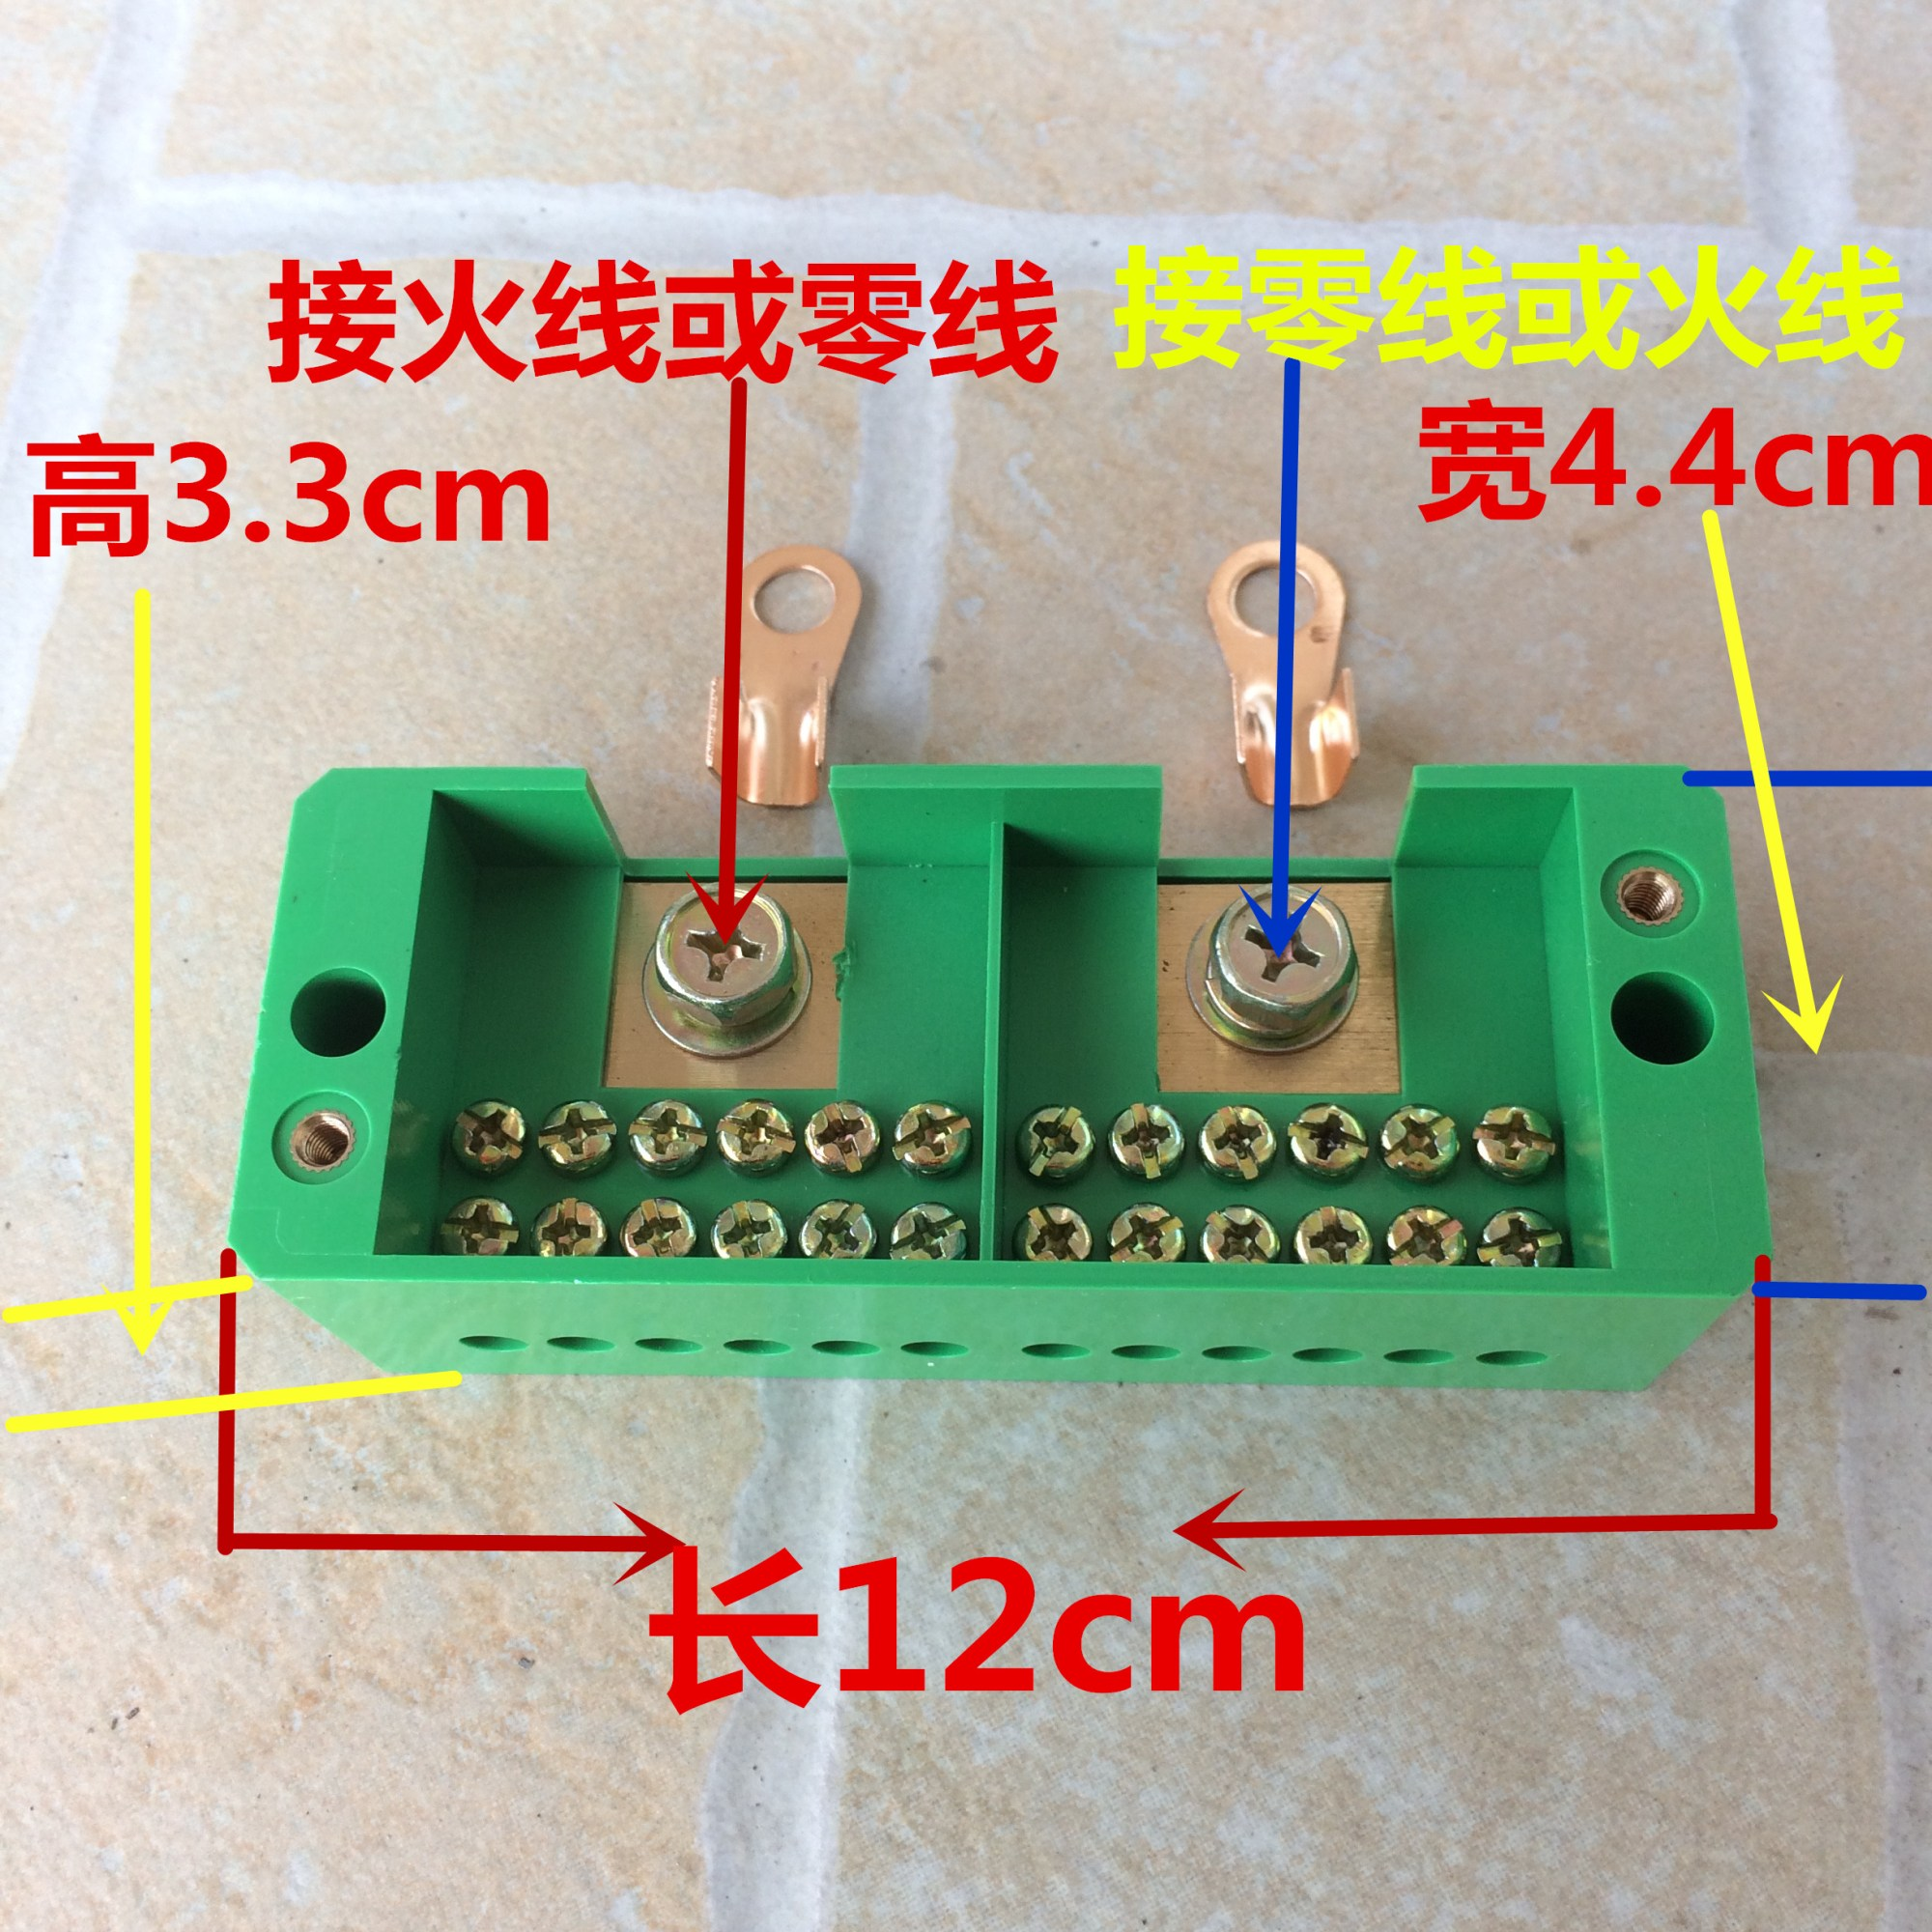 hight resolution of  two in two out of the terminal block household wire splitter fj6 terminal block single phase